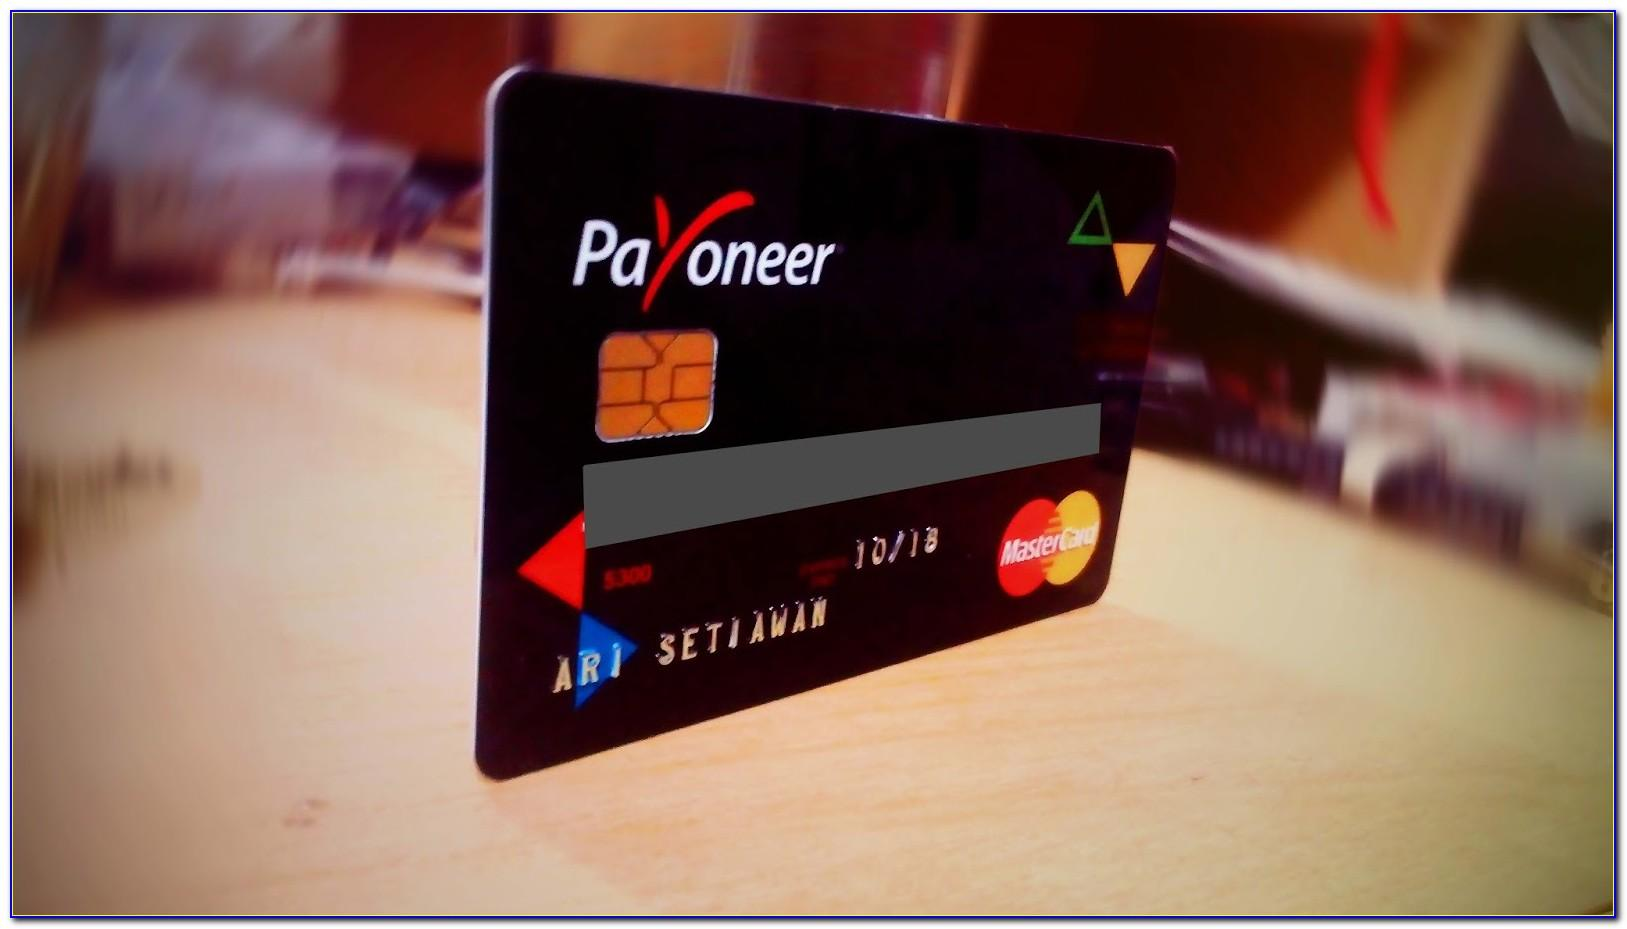 How To Get A Payoneer Mastercard For Free